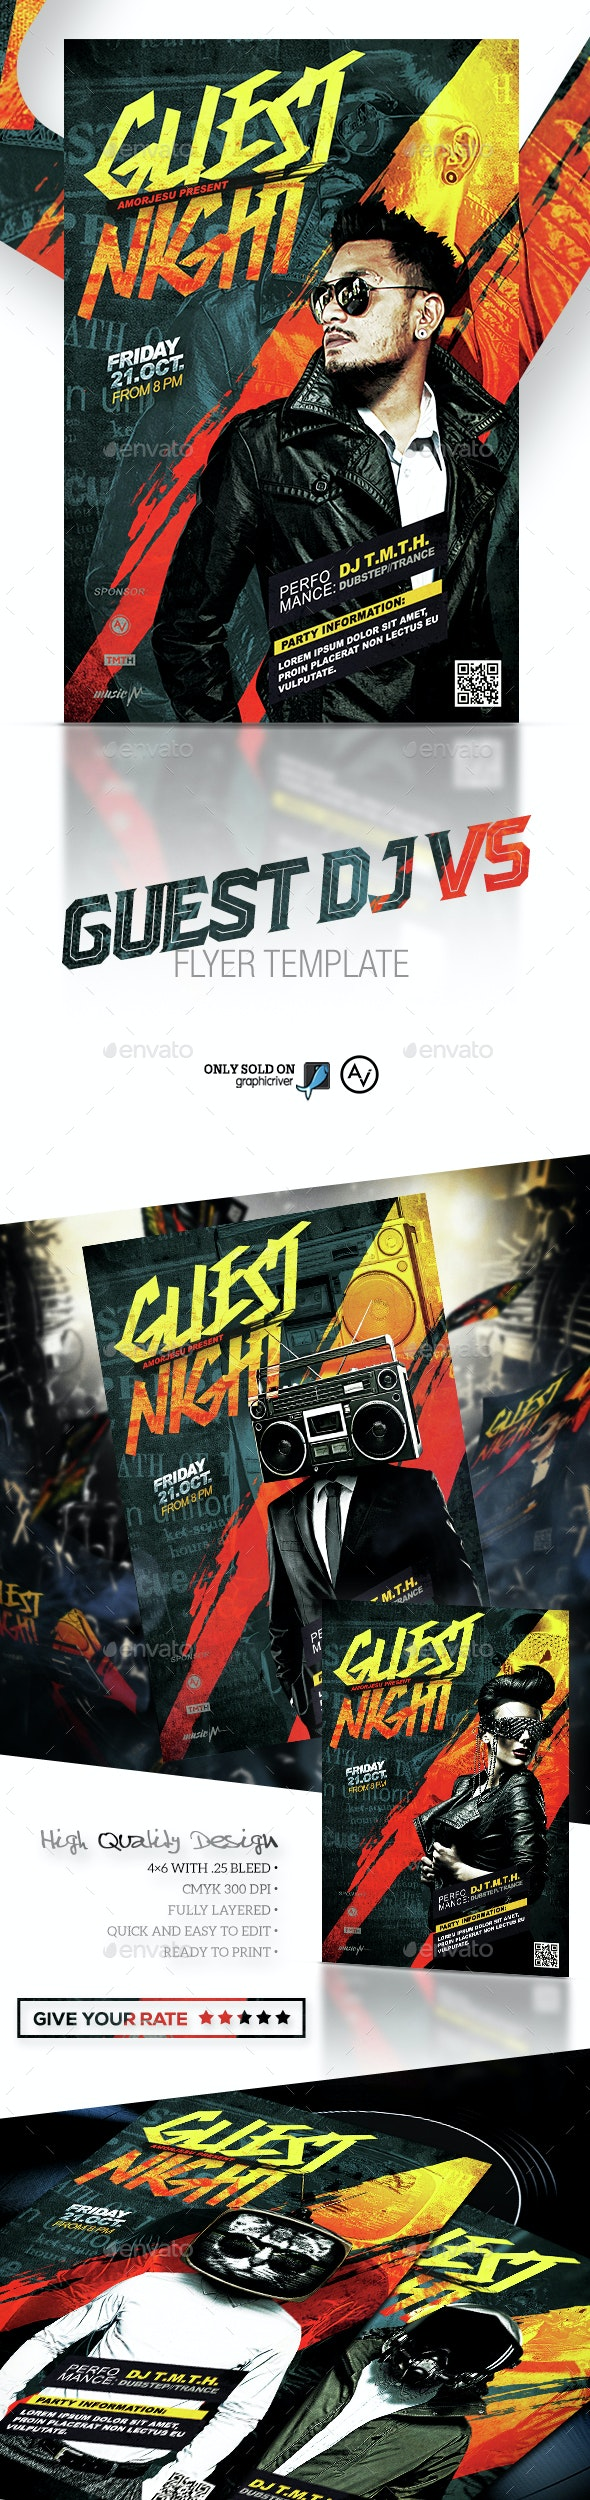 Guest DJ Flyer Template V5 - Clubs & Parties Events